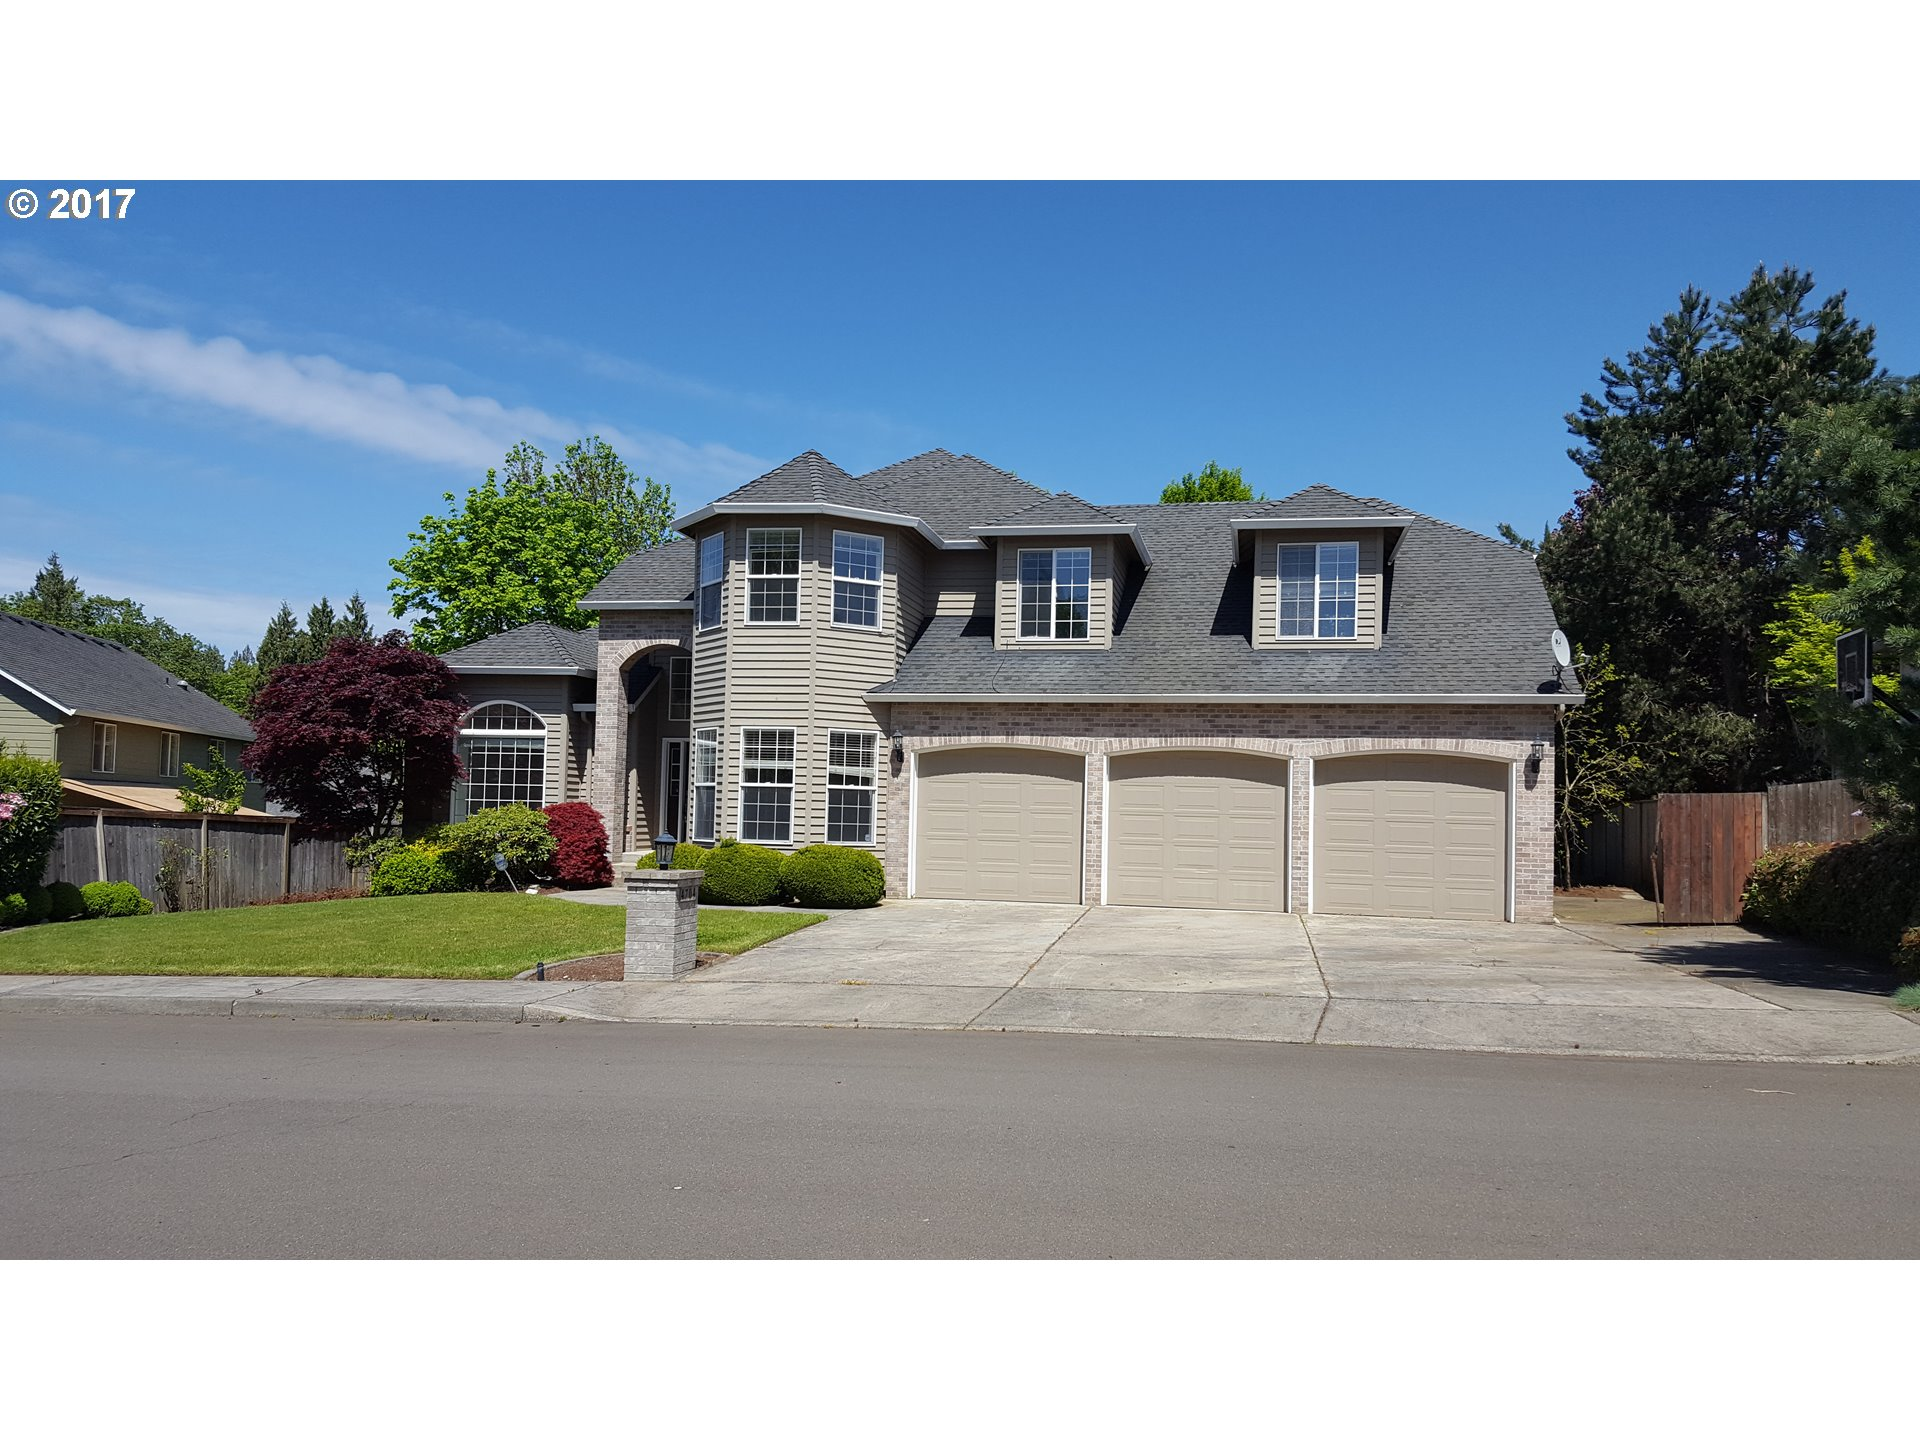 4704 NW 138TH ST, Vancouver, WA 98685